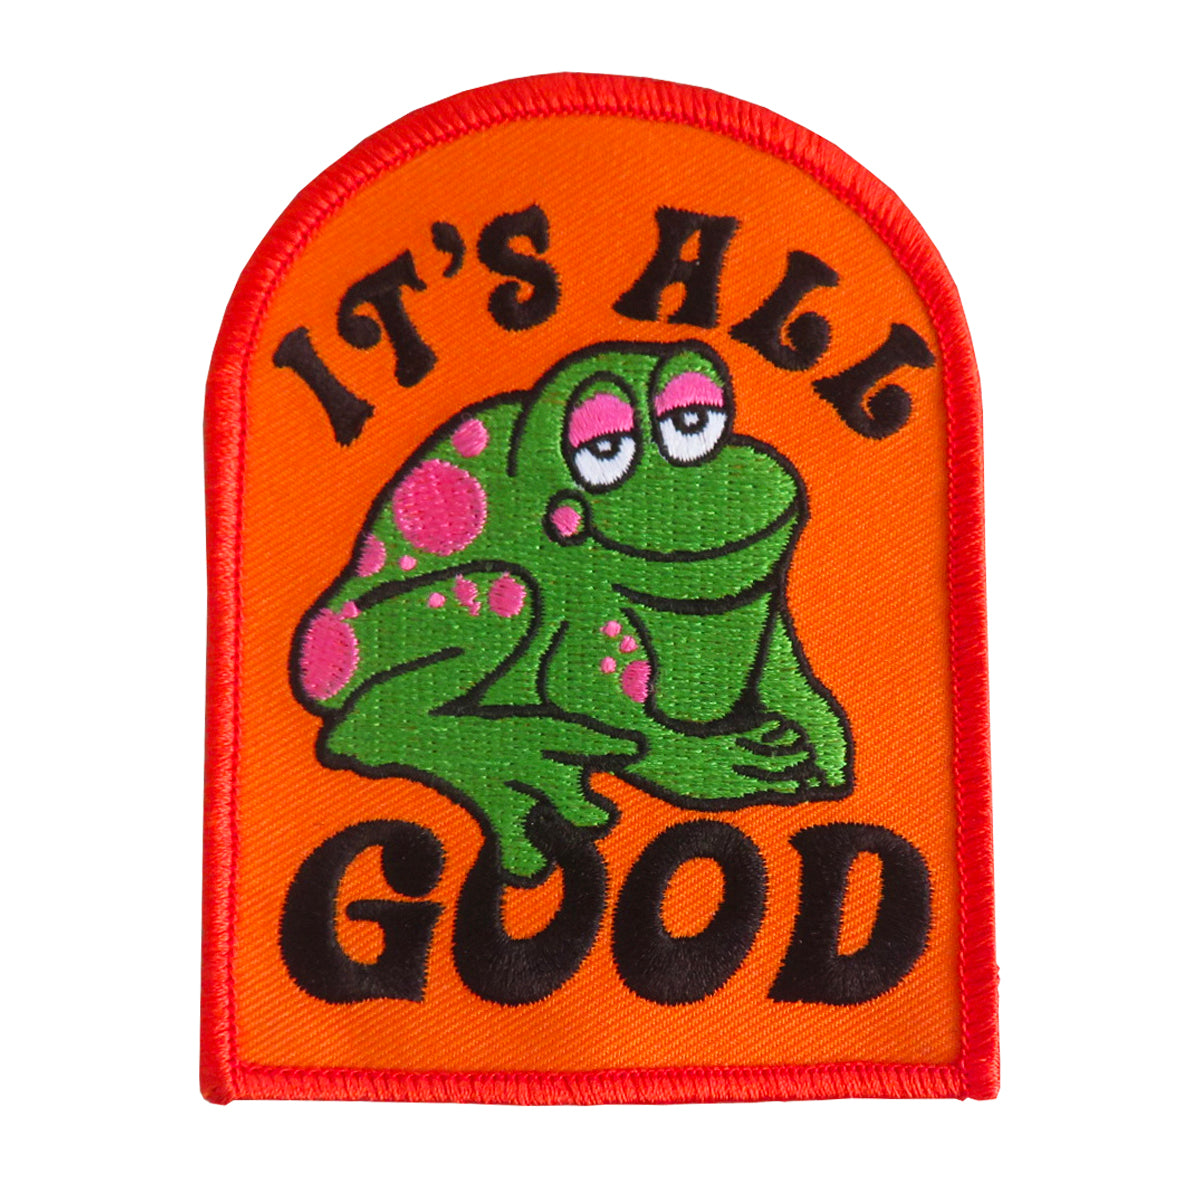 It's All Good Patch